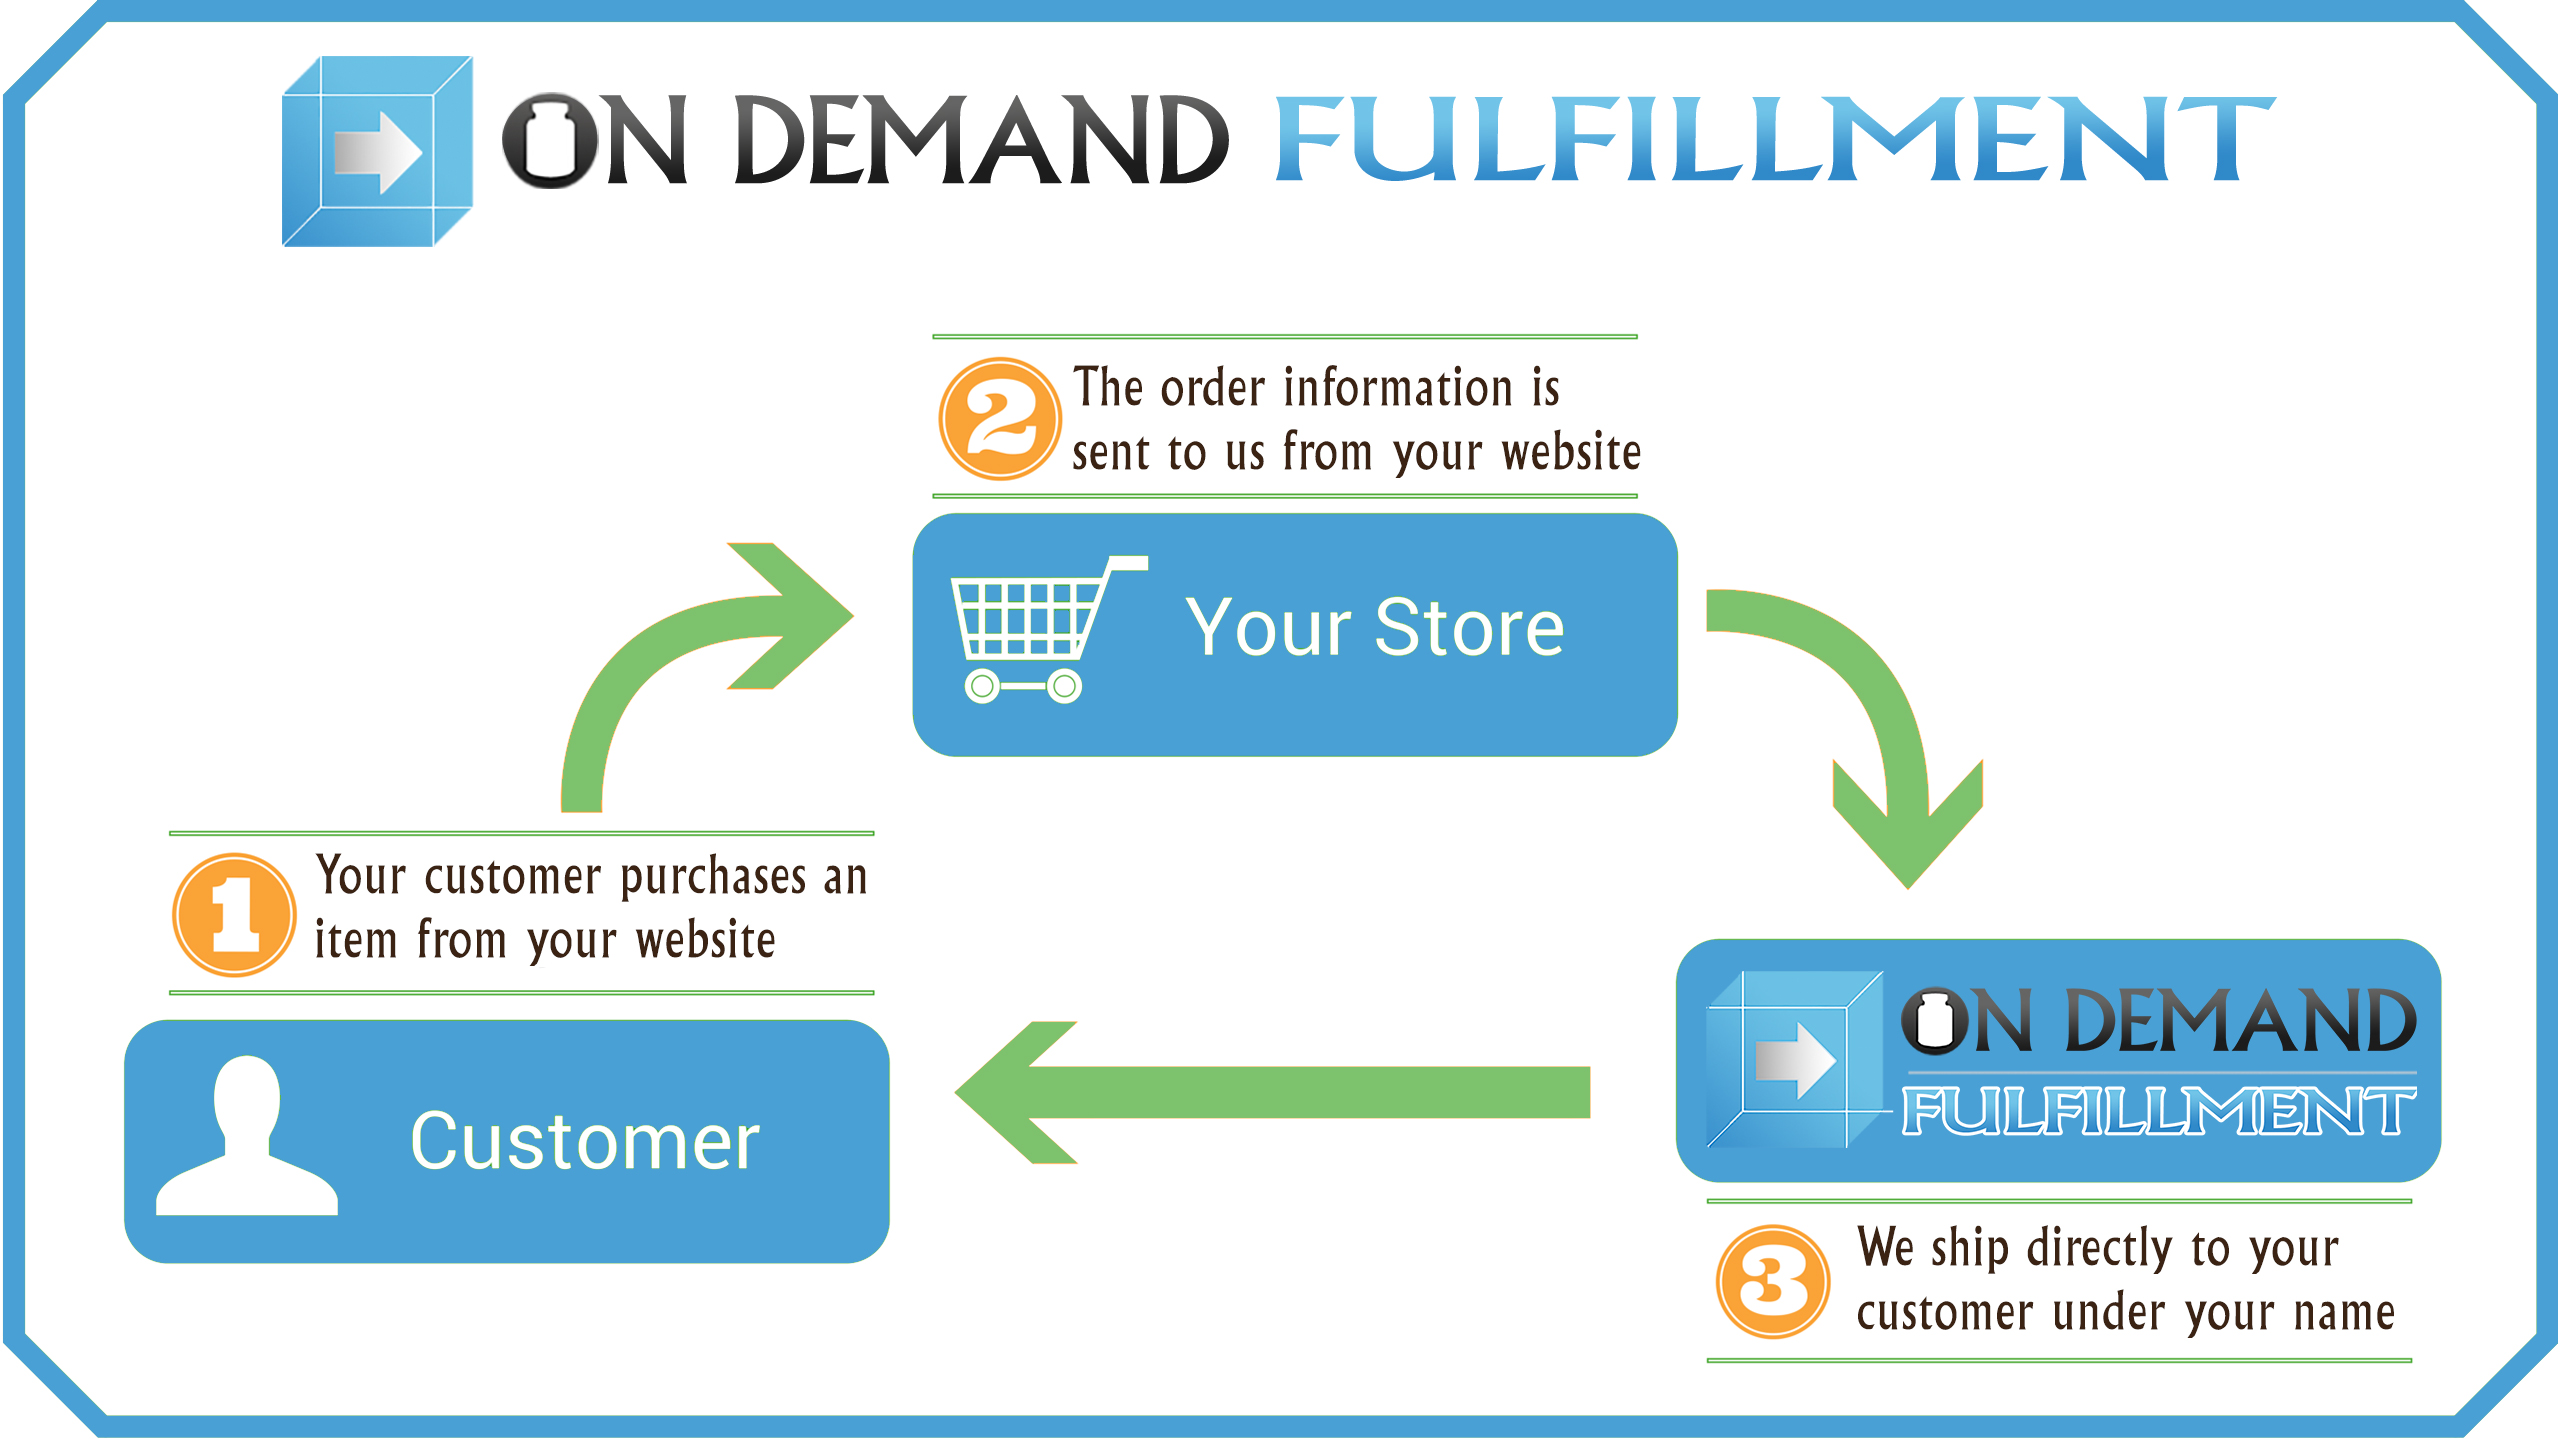 How On Demand fulfillment services work